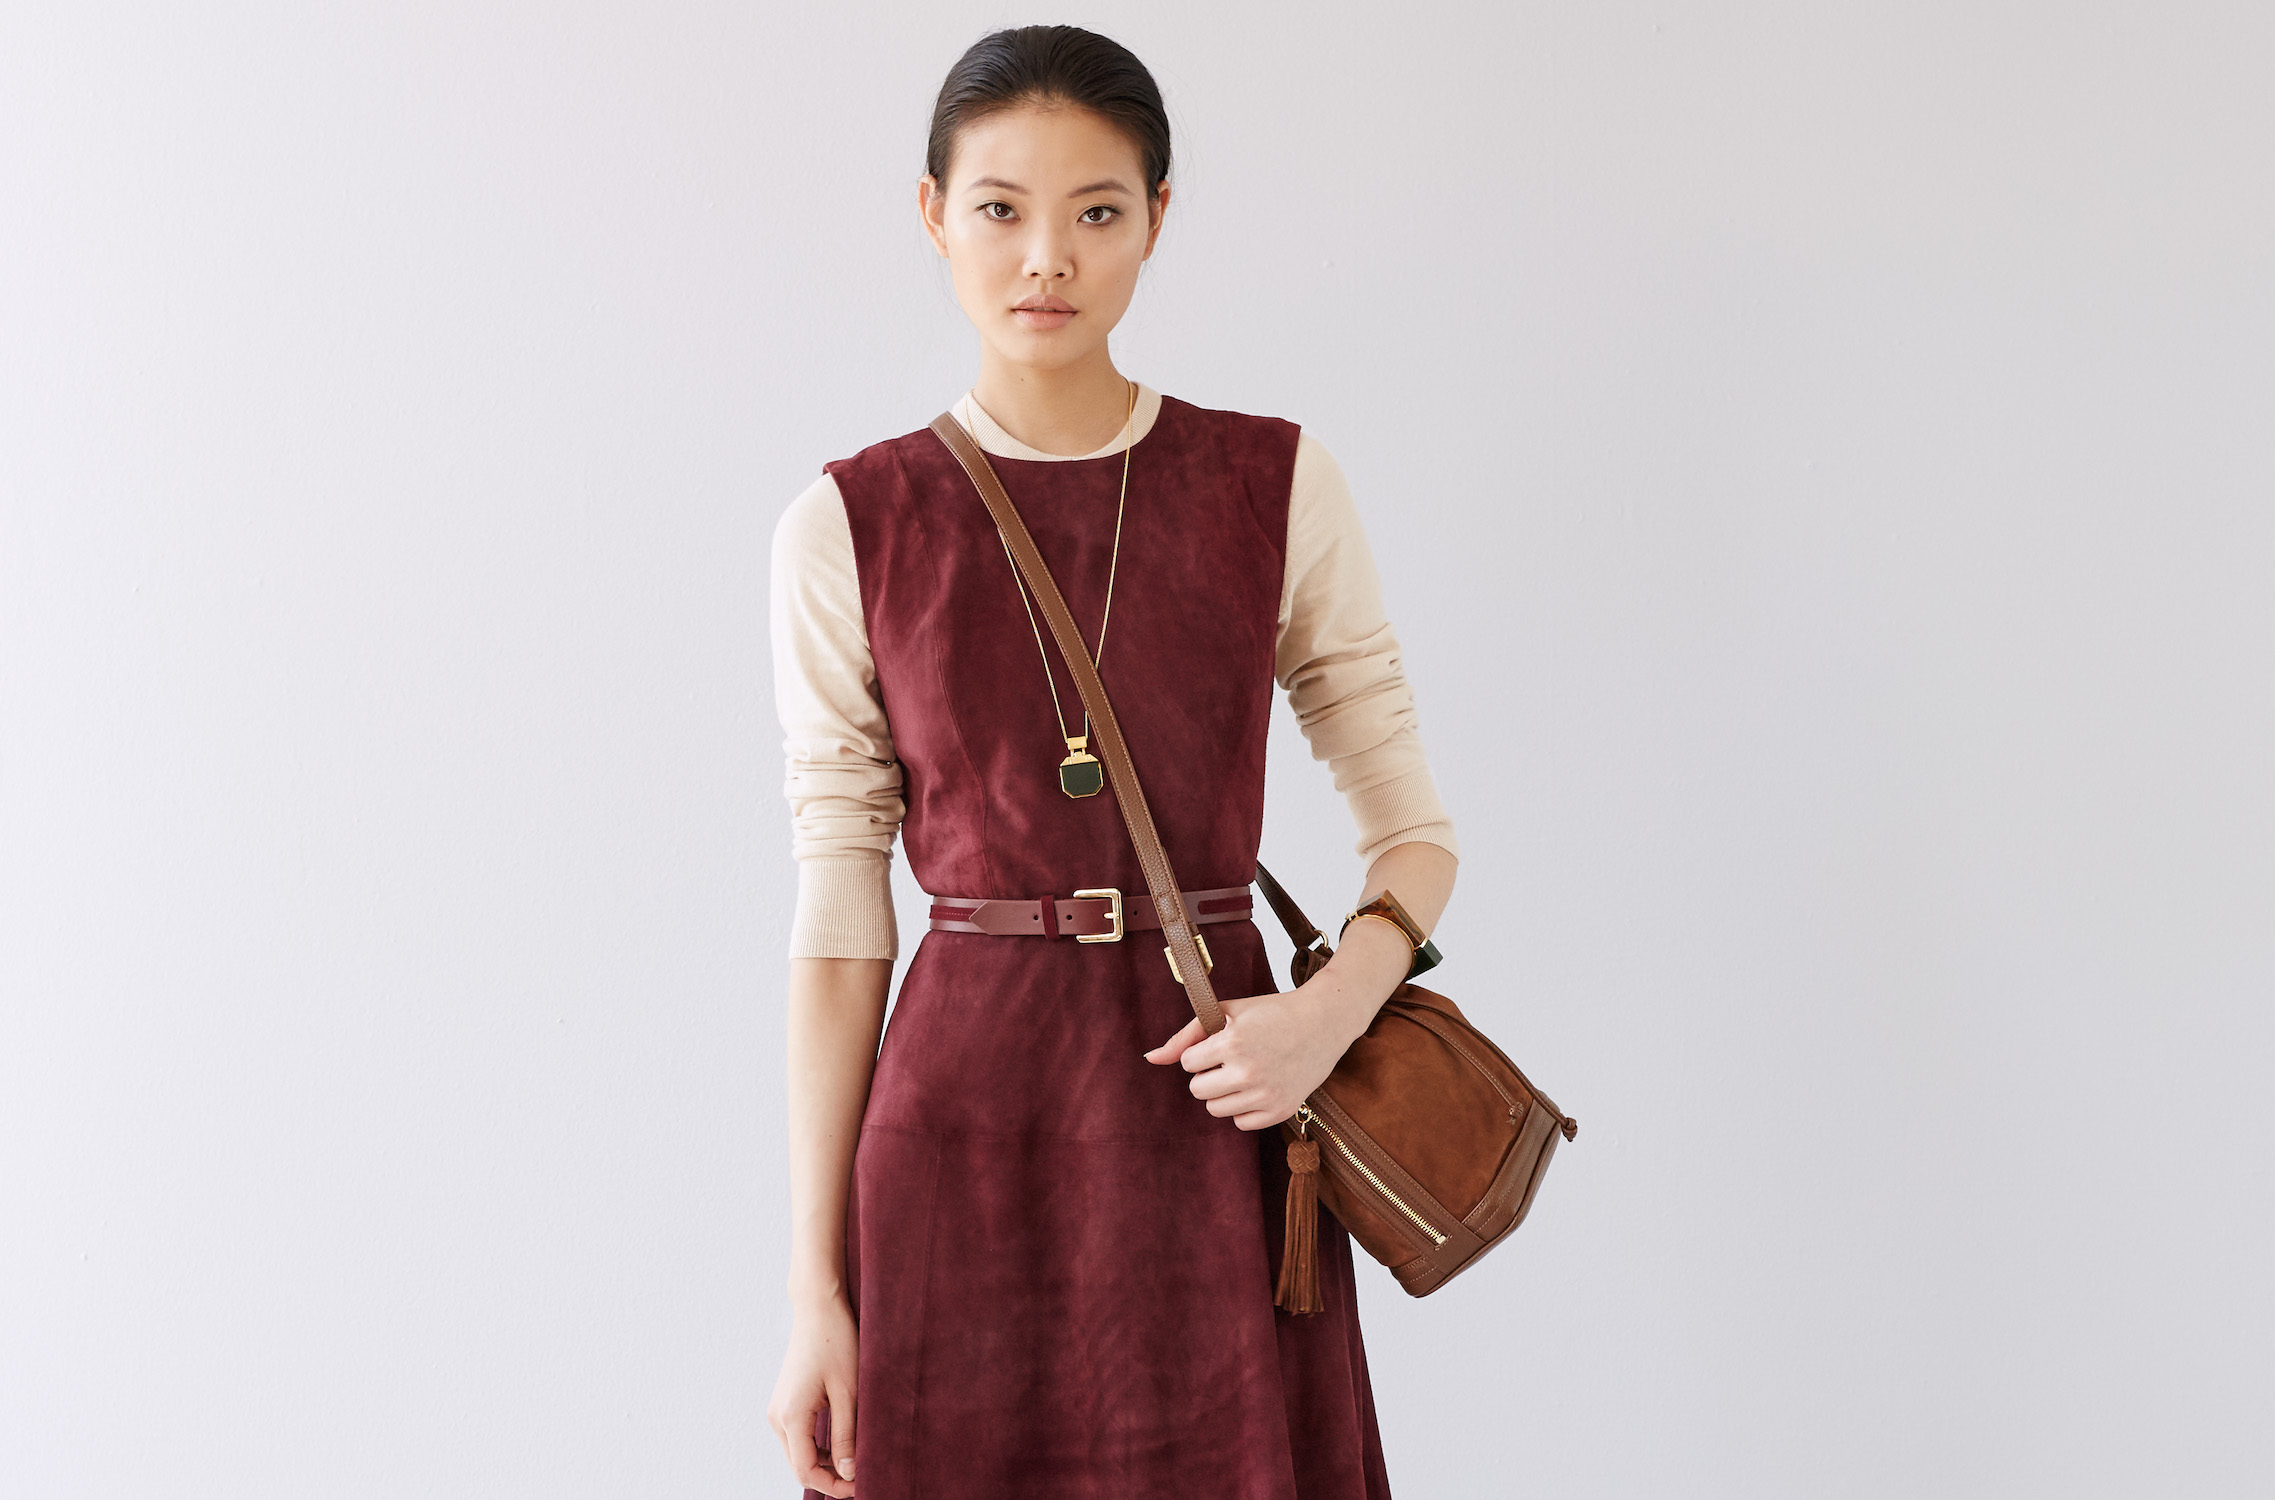 A belted suede dress that hits just above the knee over a thin T-shirt will take you from work to play (credit: ann taylor)